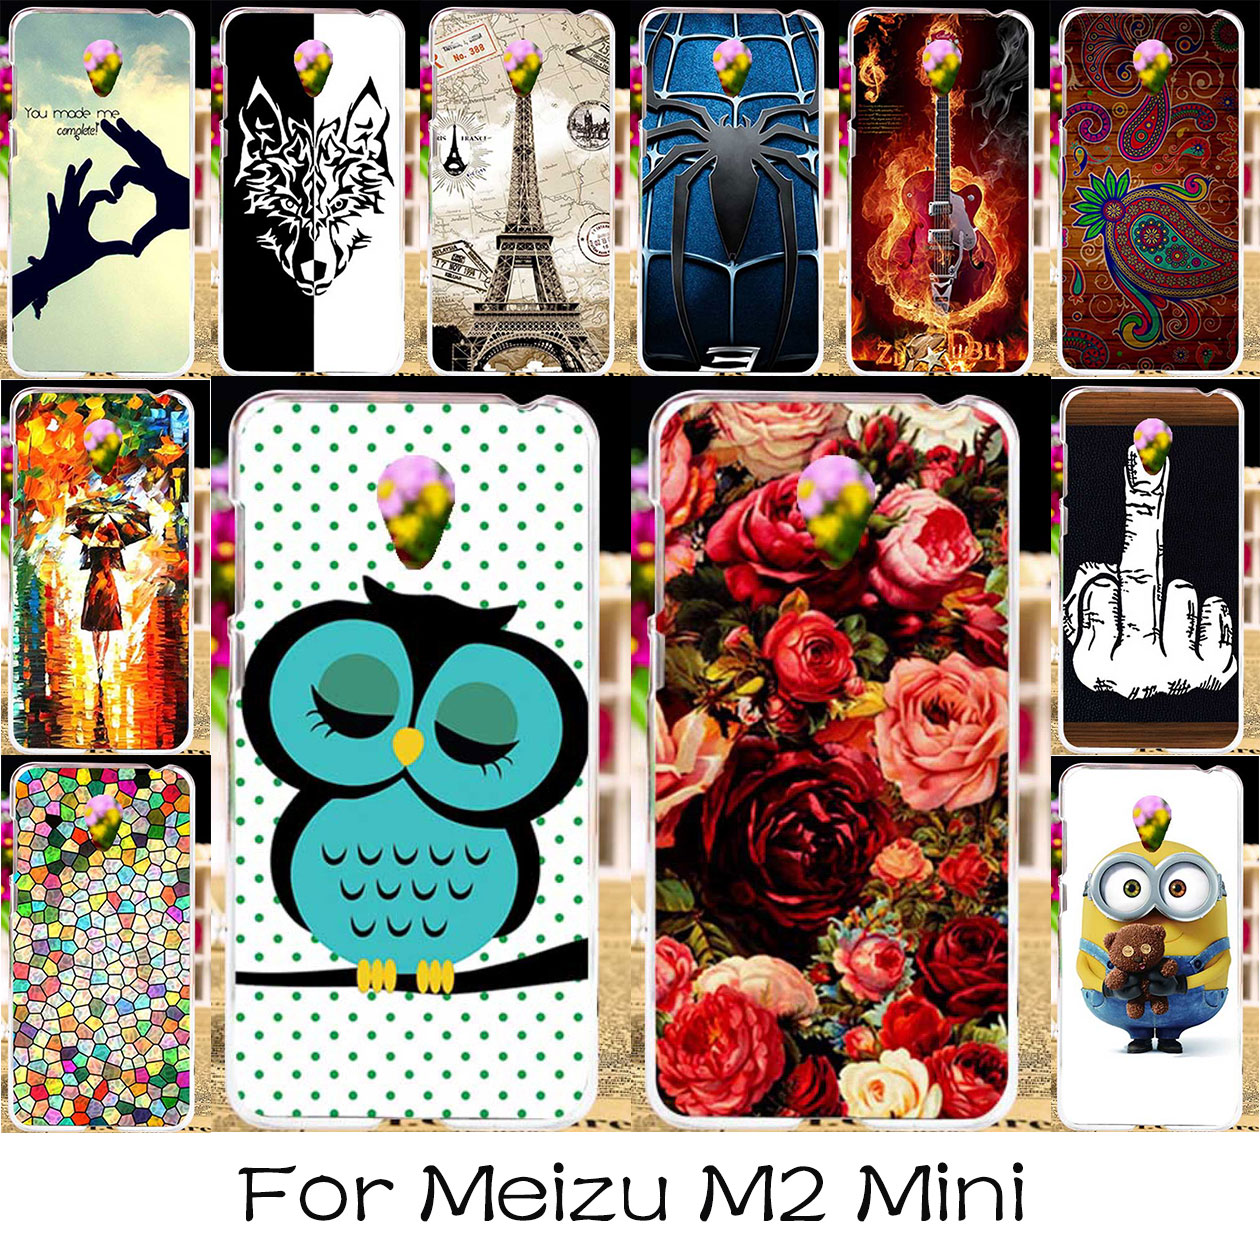 TAOYUNXI Silicone Plastic Phone Case For Meizu M2 Mini Meilan 2 Dual SIM 4G LTE Meilan2 Bag Cover For Meizu M2 Mini Painted Case